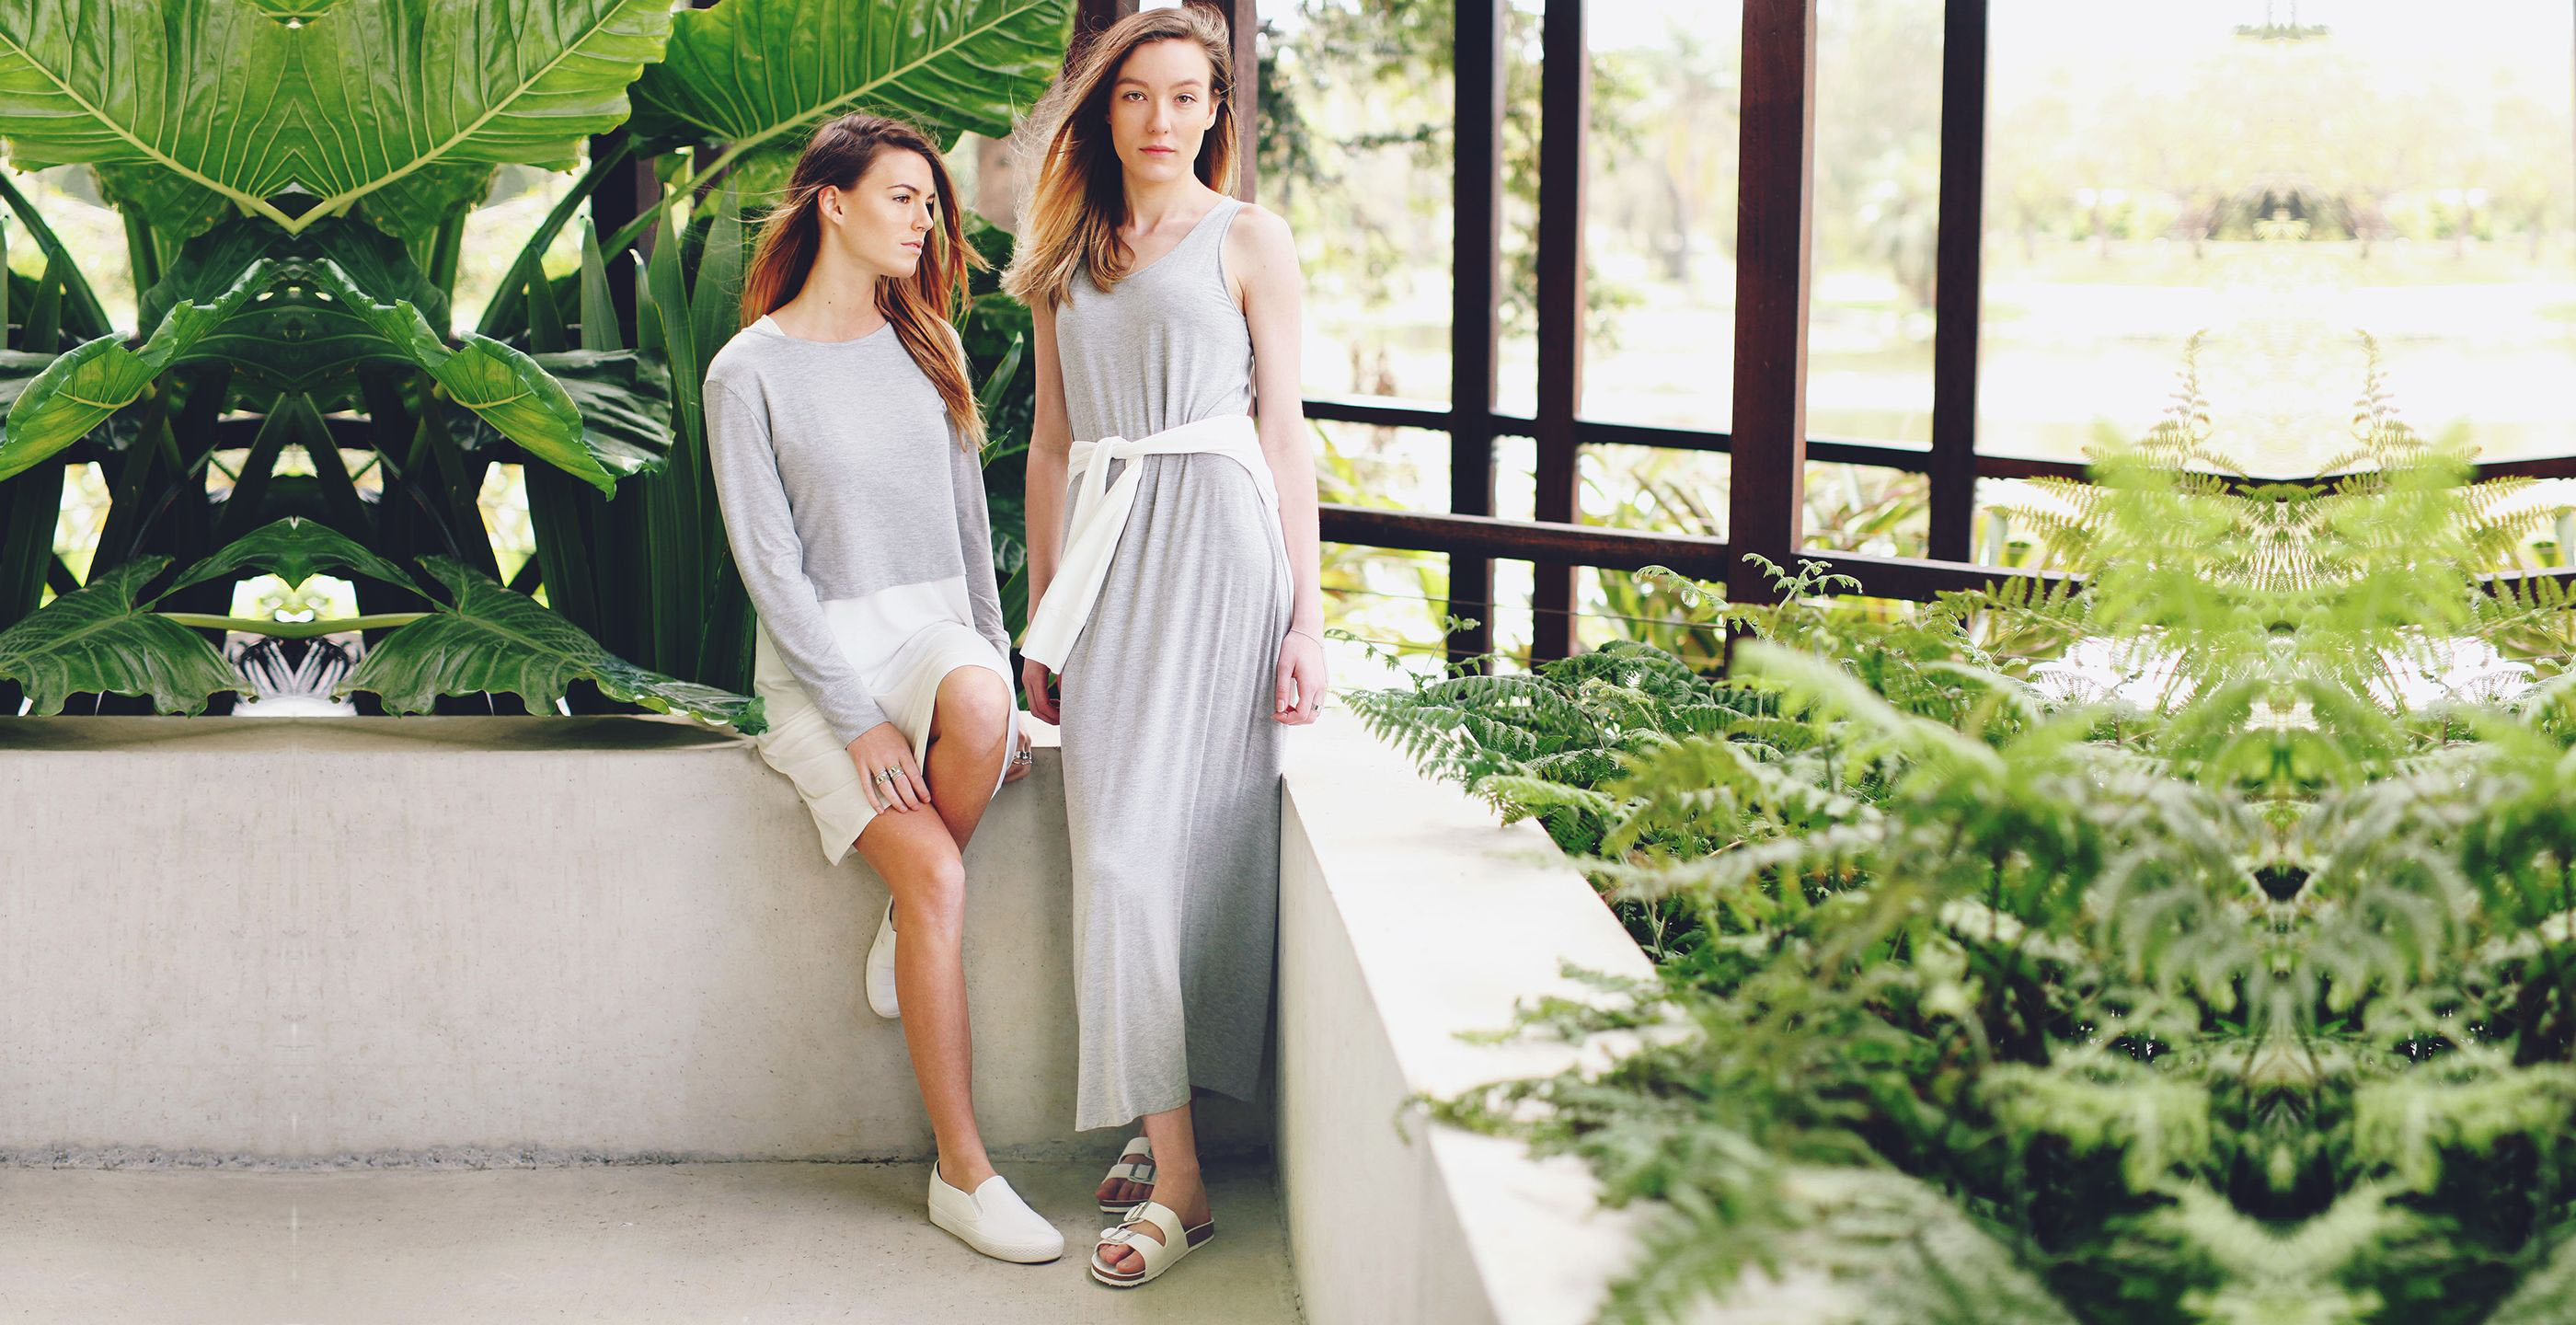 the-great-beyond-bamboo-clothing-australian-ethical-fashion.jpg